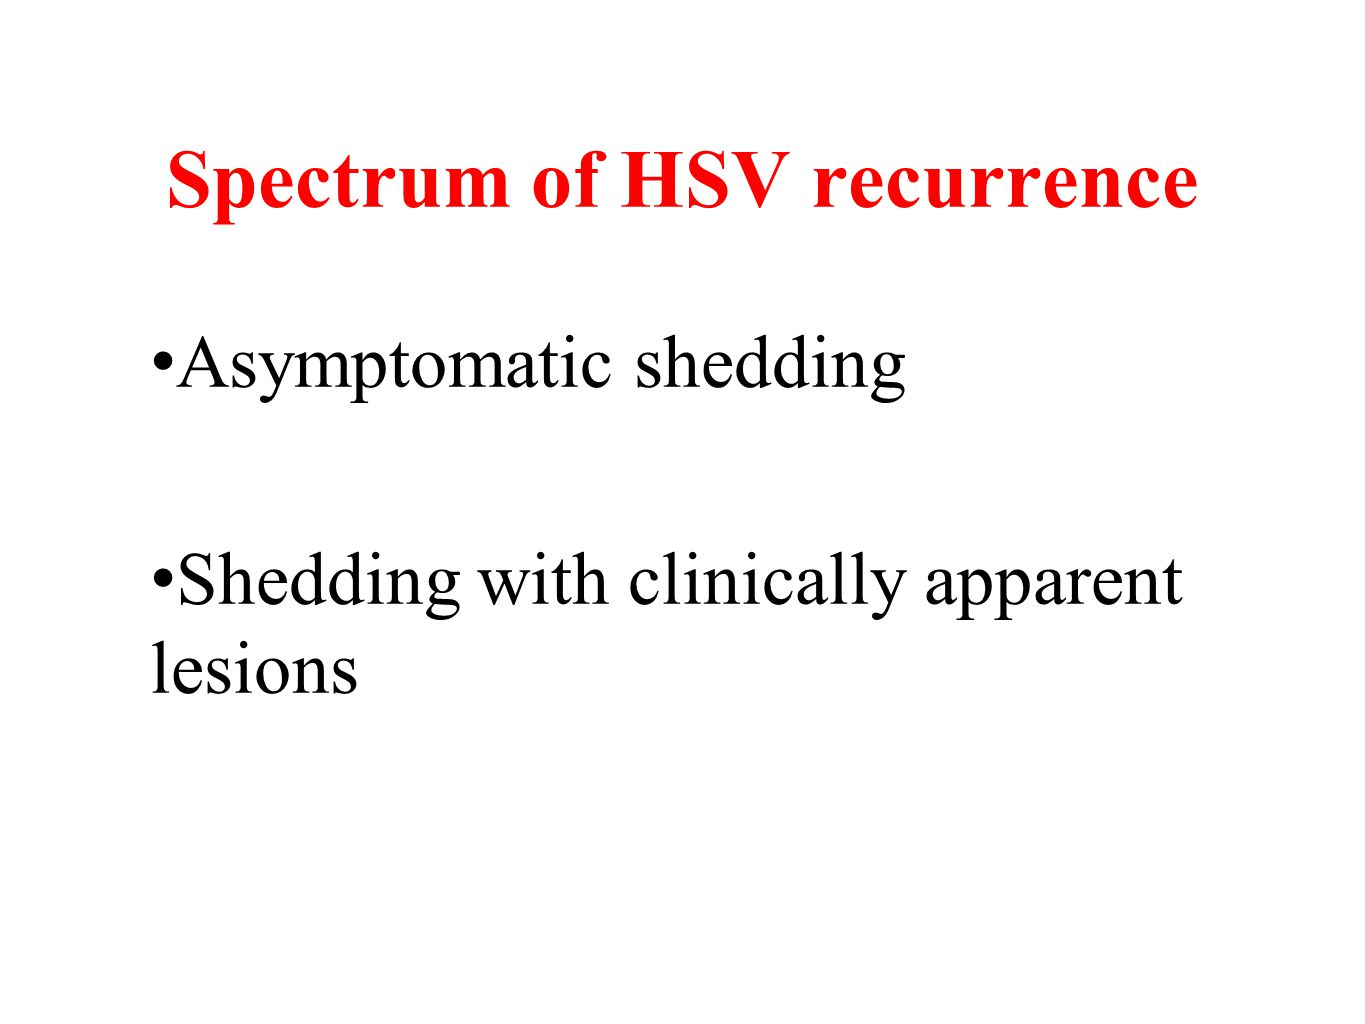 Spectrum of HSV recurrence